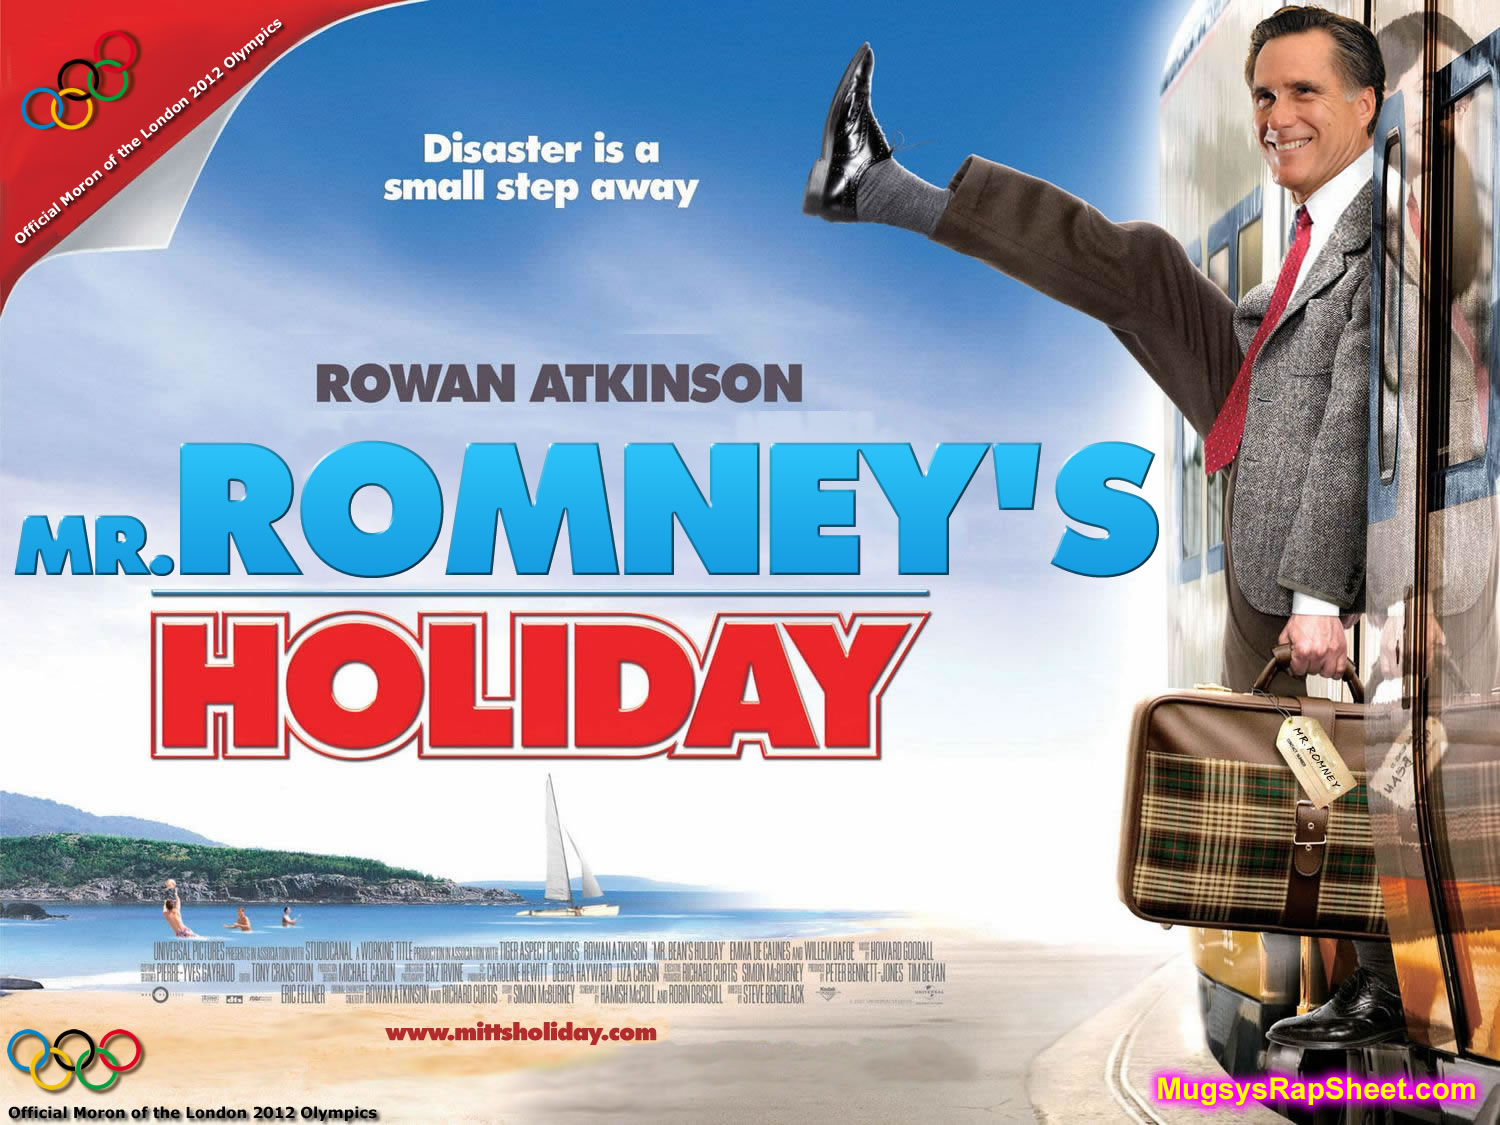 Mr. Romney's Holiday